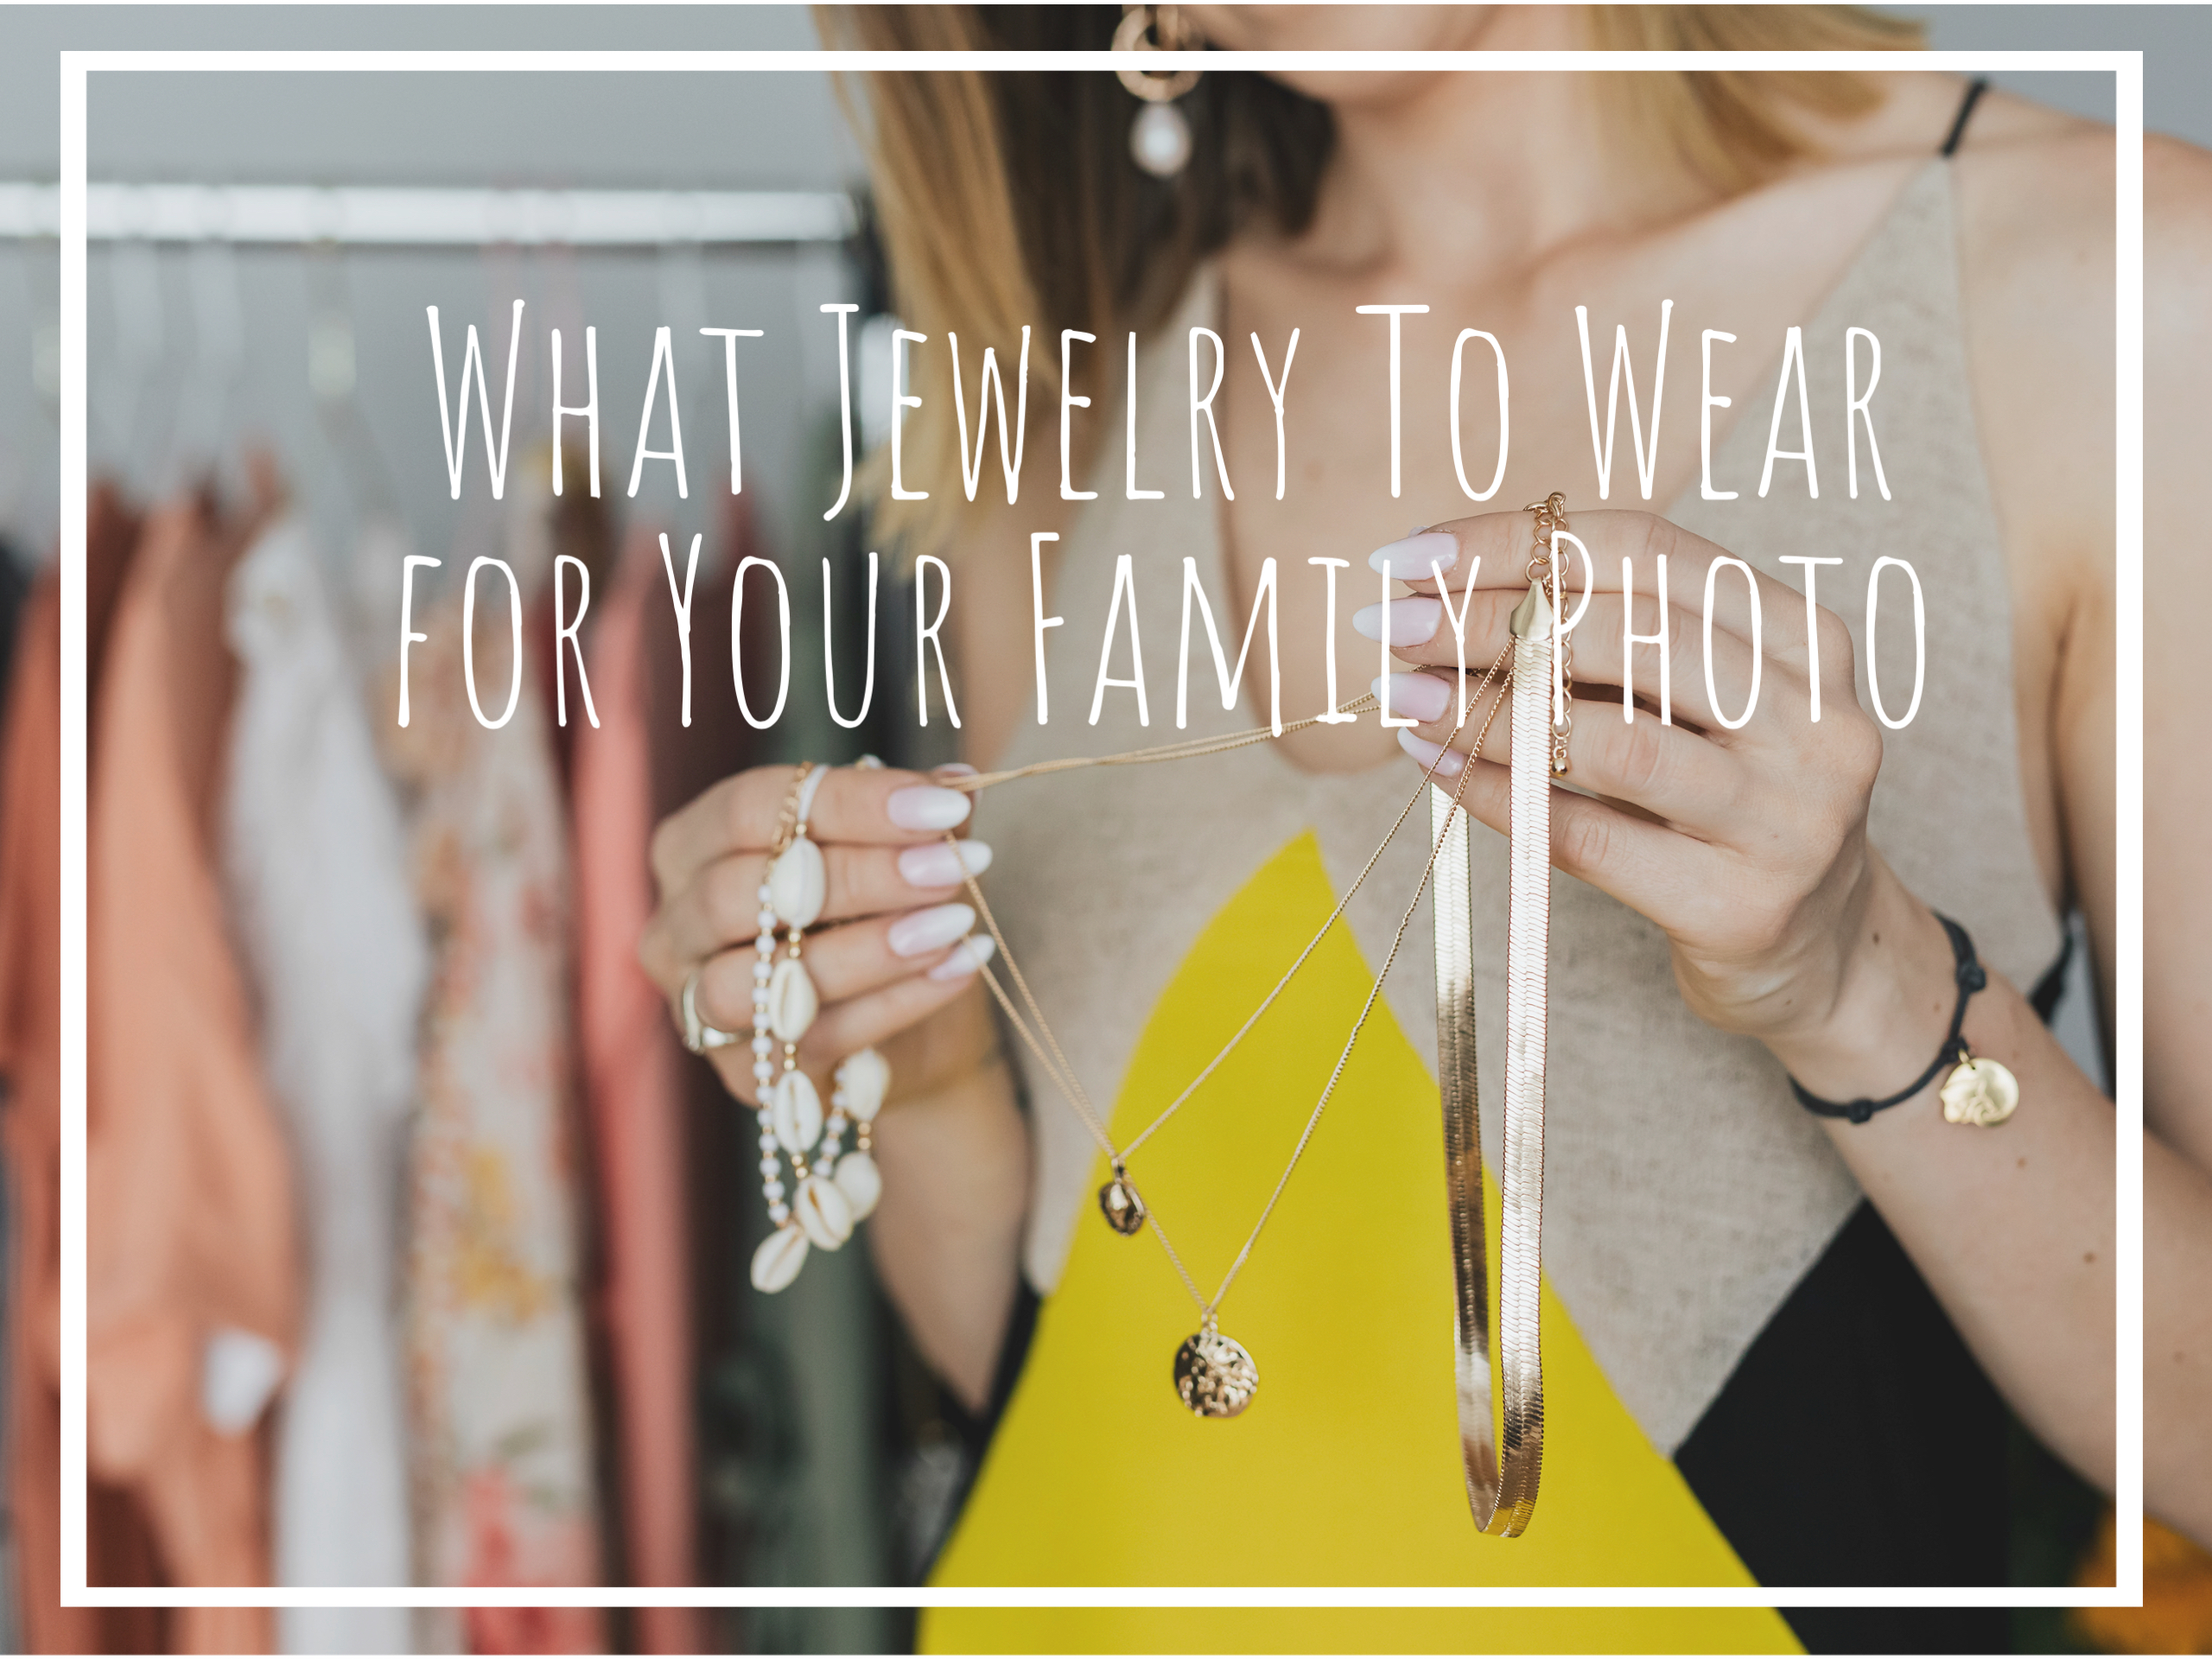 What Jewelry To Wear For Your Family Photo